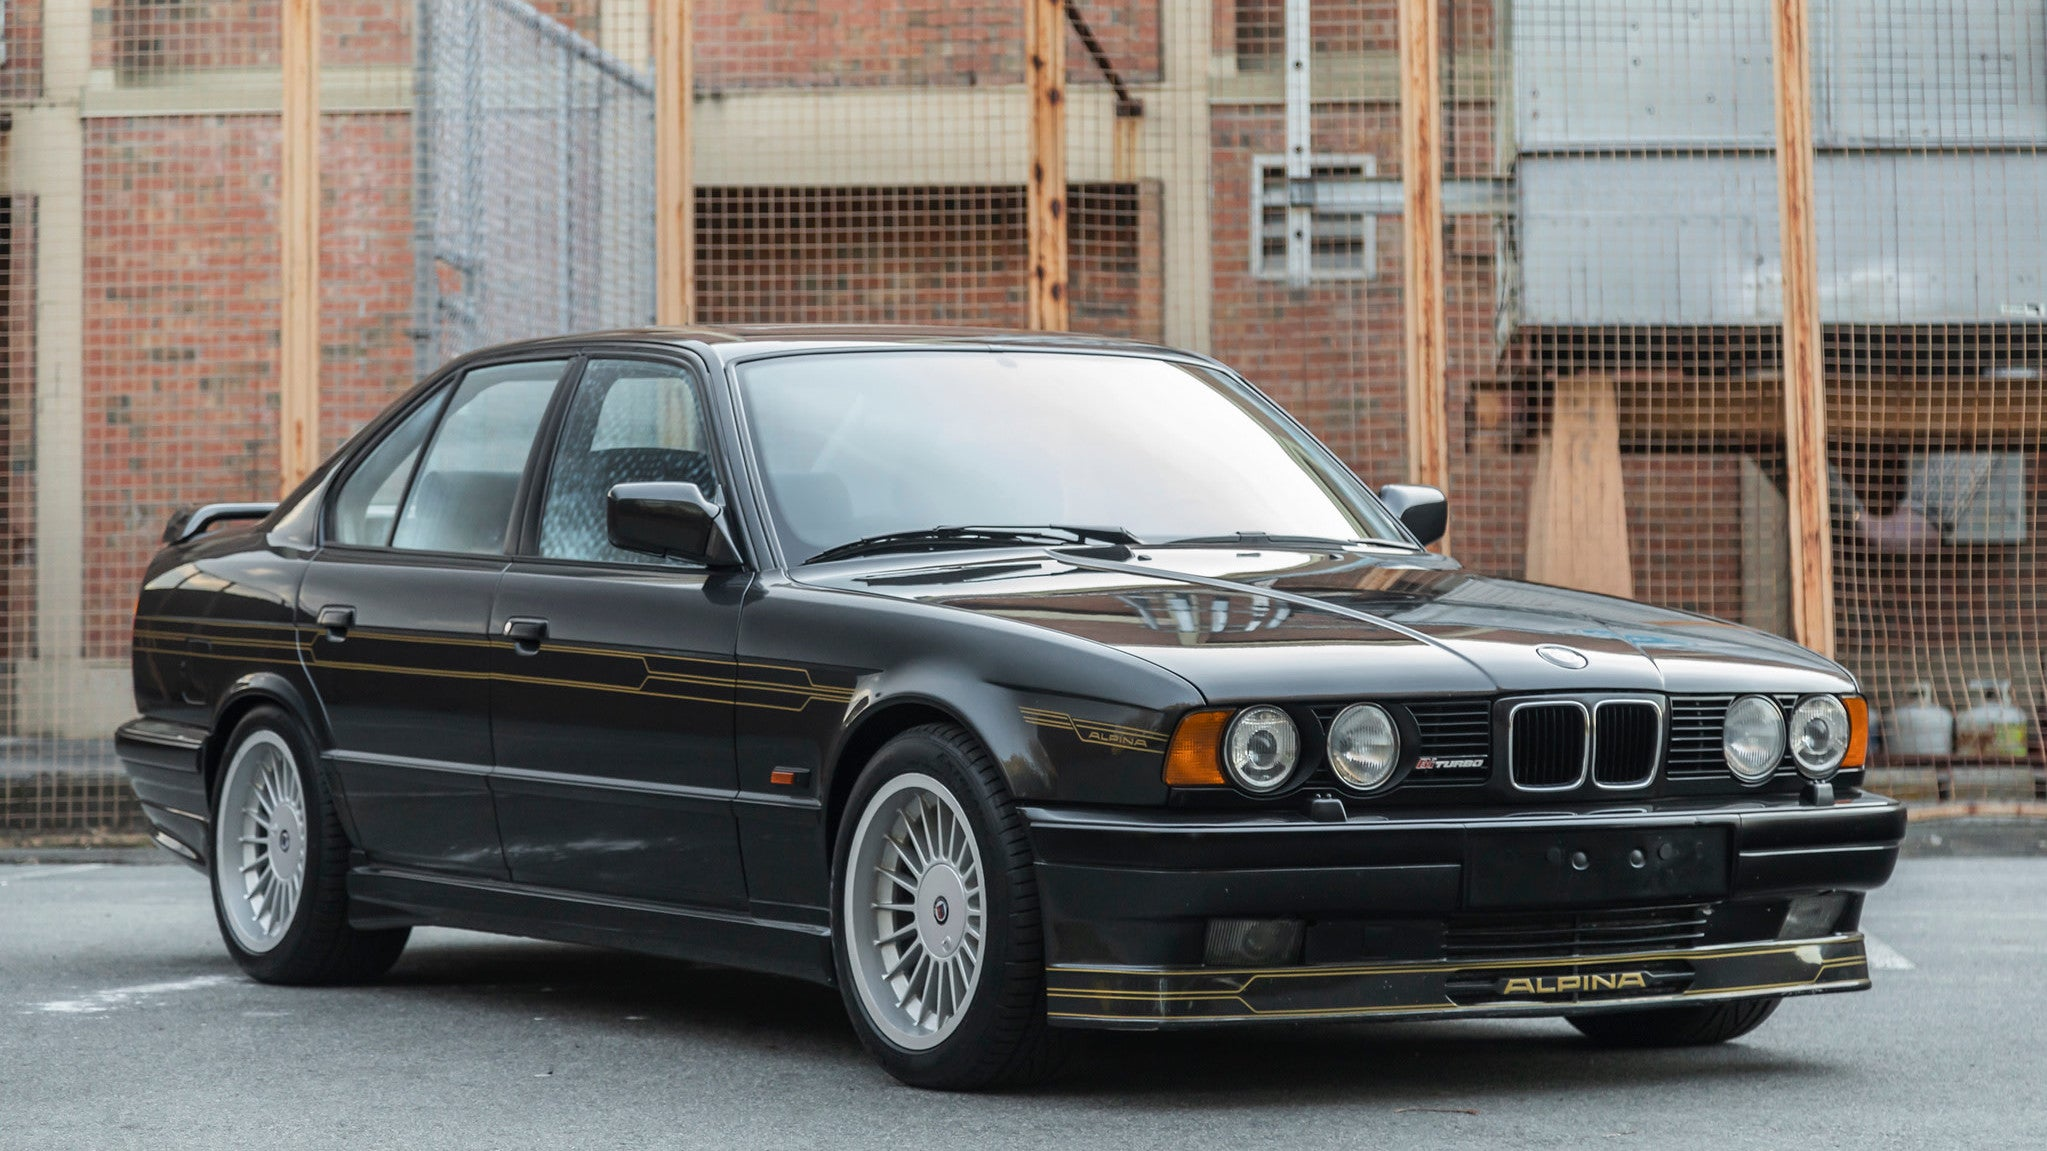 This 1990 Alpina B10 Biturbo Is My Current Obsession